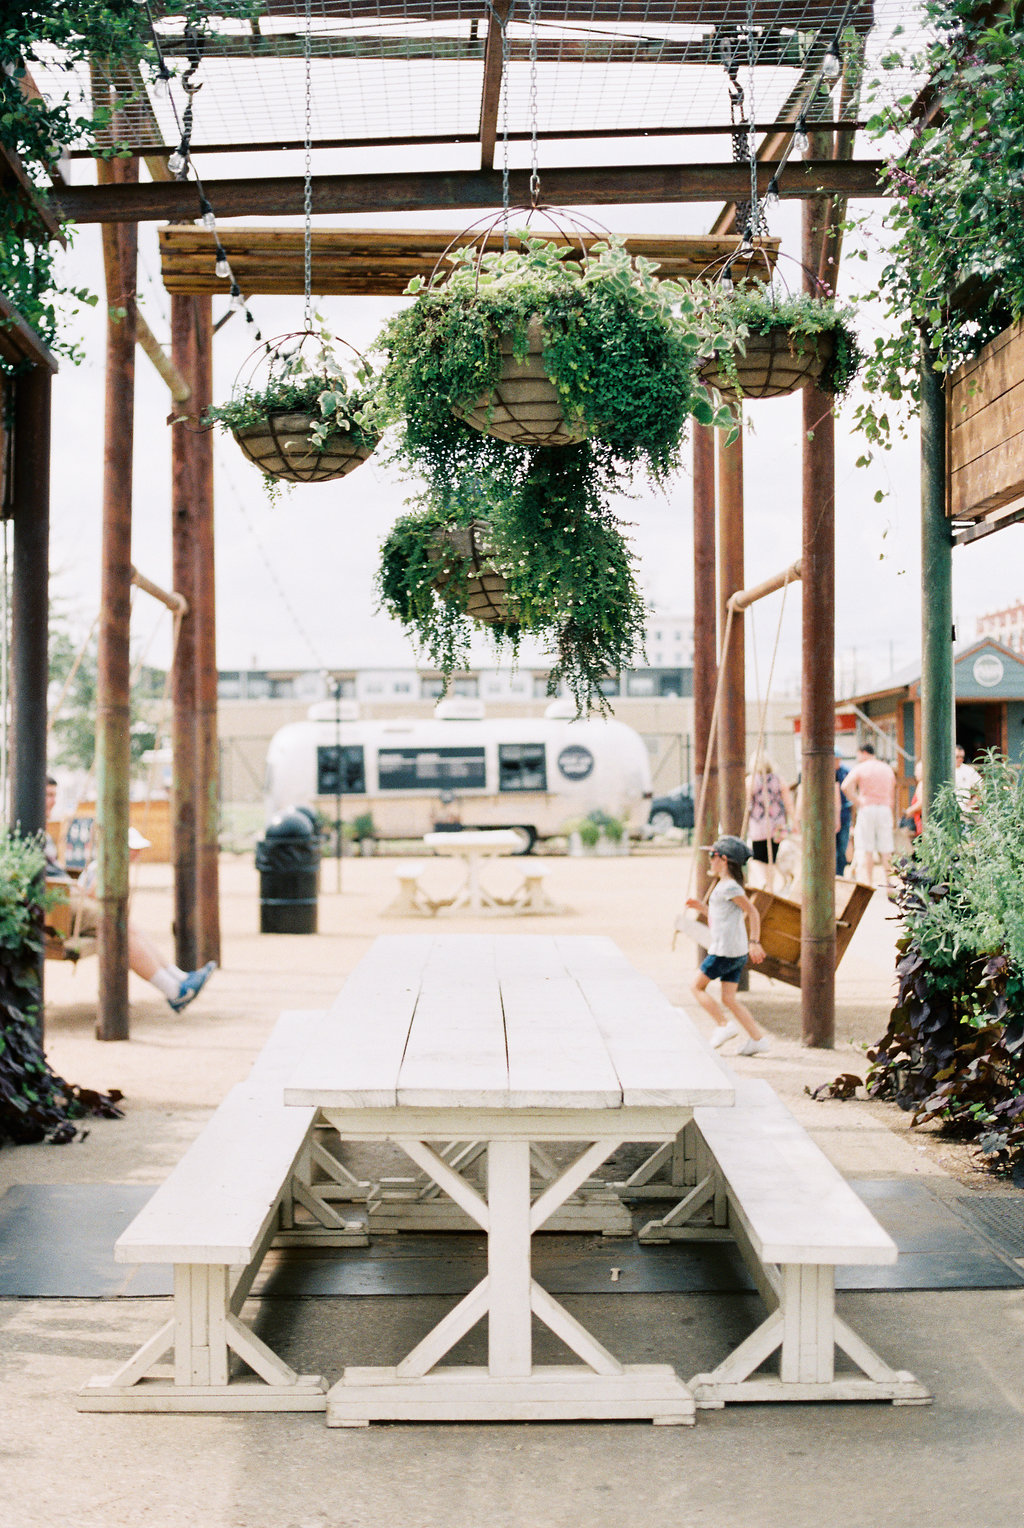 The 7 Things You Must Do at Magnolia Market on Cottage HIll | cottagehill.co29.jpg